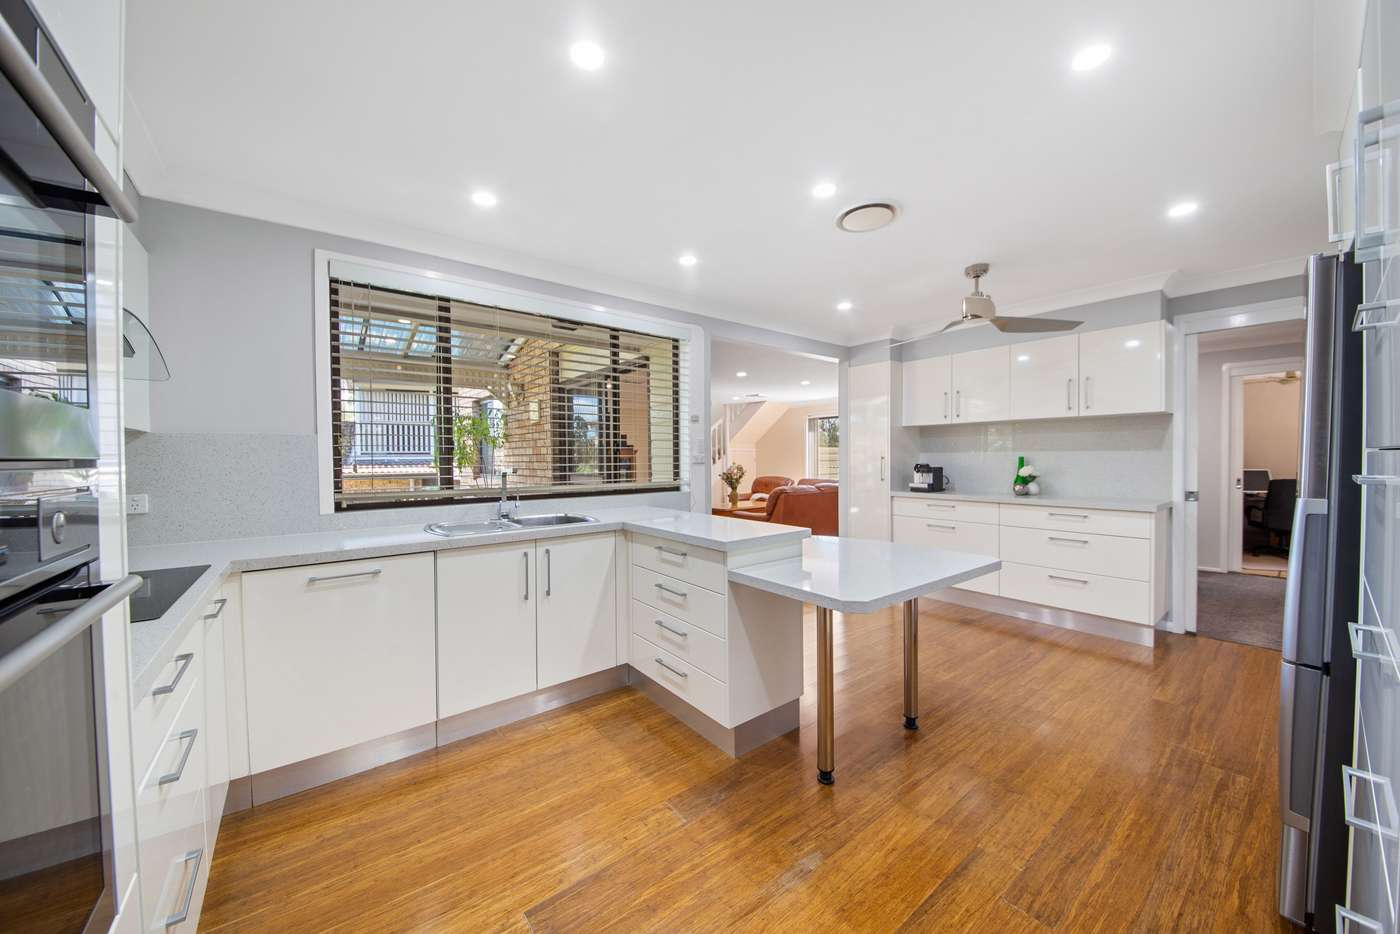 Main view of Homely house listing, 33 Barnes Crescent, Menai NSW 2234